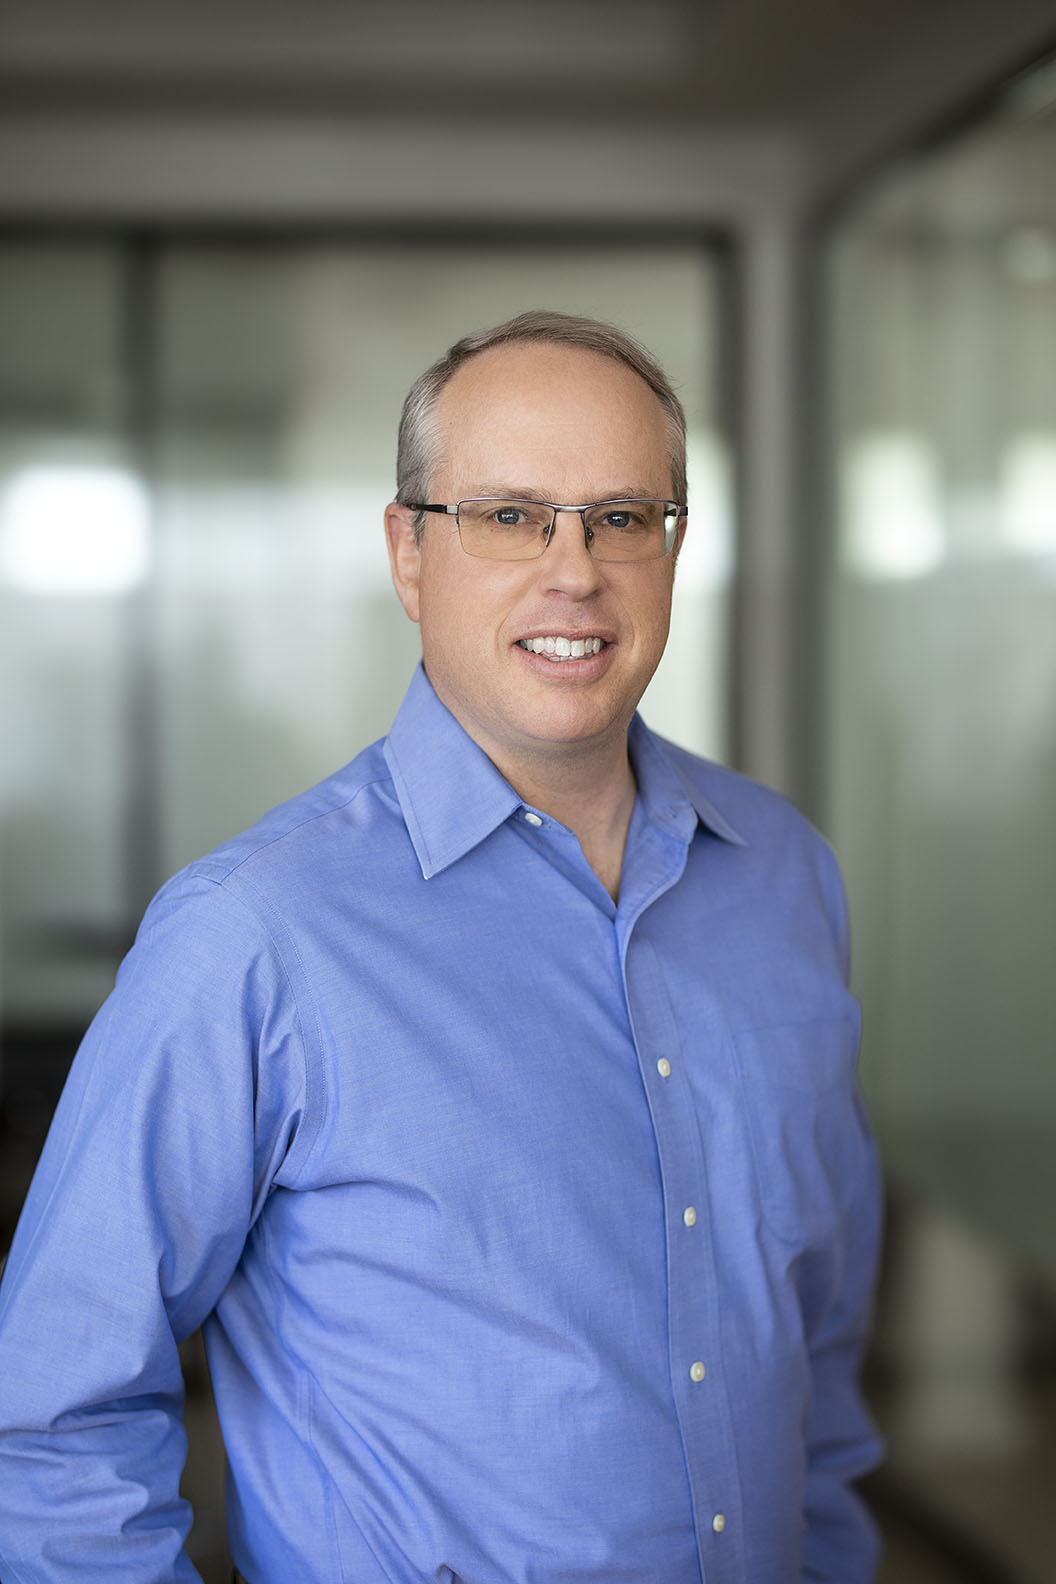 "TODD KESSELMAN | co-founder & partner - Todd is co-founder and Partner at PICO Venture Partners. With more than 20 years of experience as an investor and investment banker, Todd plays a leading role in all aspects of the firm's investment and operations efforts. In addition to serving on several boards, he is a trusted advisor to many of our founders.Prior to PICO, Todd co-founded Precision Capital with Gina. Before that, he was an investment banker at Deutsche Bank Securities. Todd's first investment position was as a high yield analyst at Nomura Securities. Although he doesn't like to admit it, Todd practiced corporate law for 5 years with a focus on structuring and negotiating acquisitions and strategic partnerships.Todd earned a J.D. from Columbia Law School and a B.A. in Economics from Binghamton University.Favorite Book: Inside, Outside by Herman WoukOutside of Work: Stand-up paddlingTheme Song: ""Against the Wind"" by Bob SegerRole Model: Nechama Leibowitz"